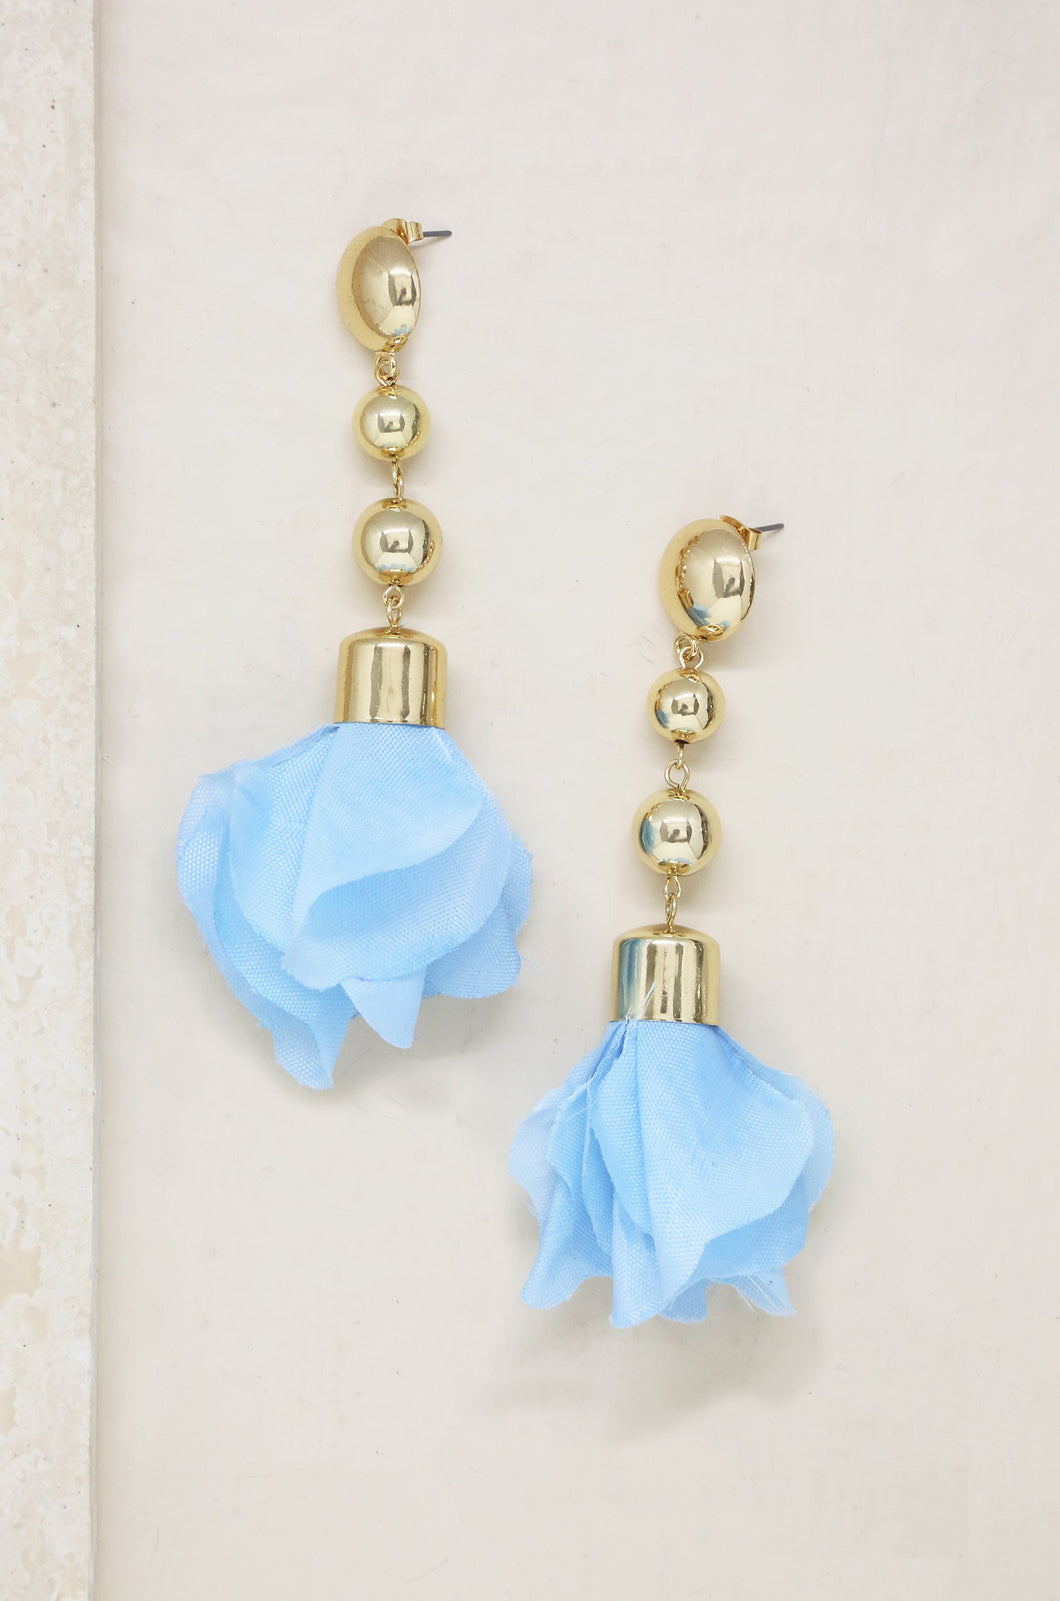 Flower Petal Drop Earrings in Blue and Gold